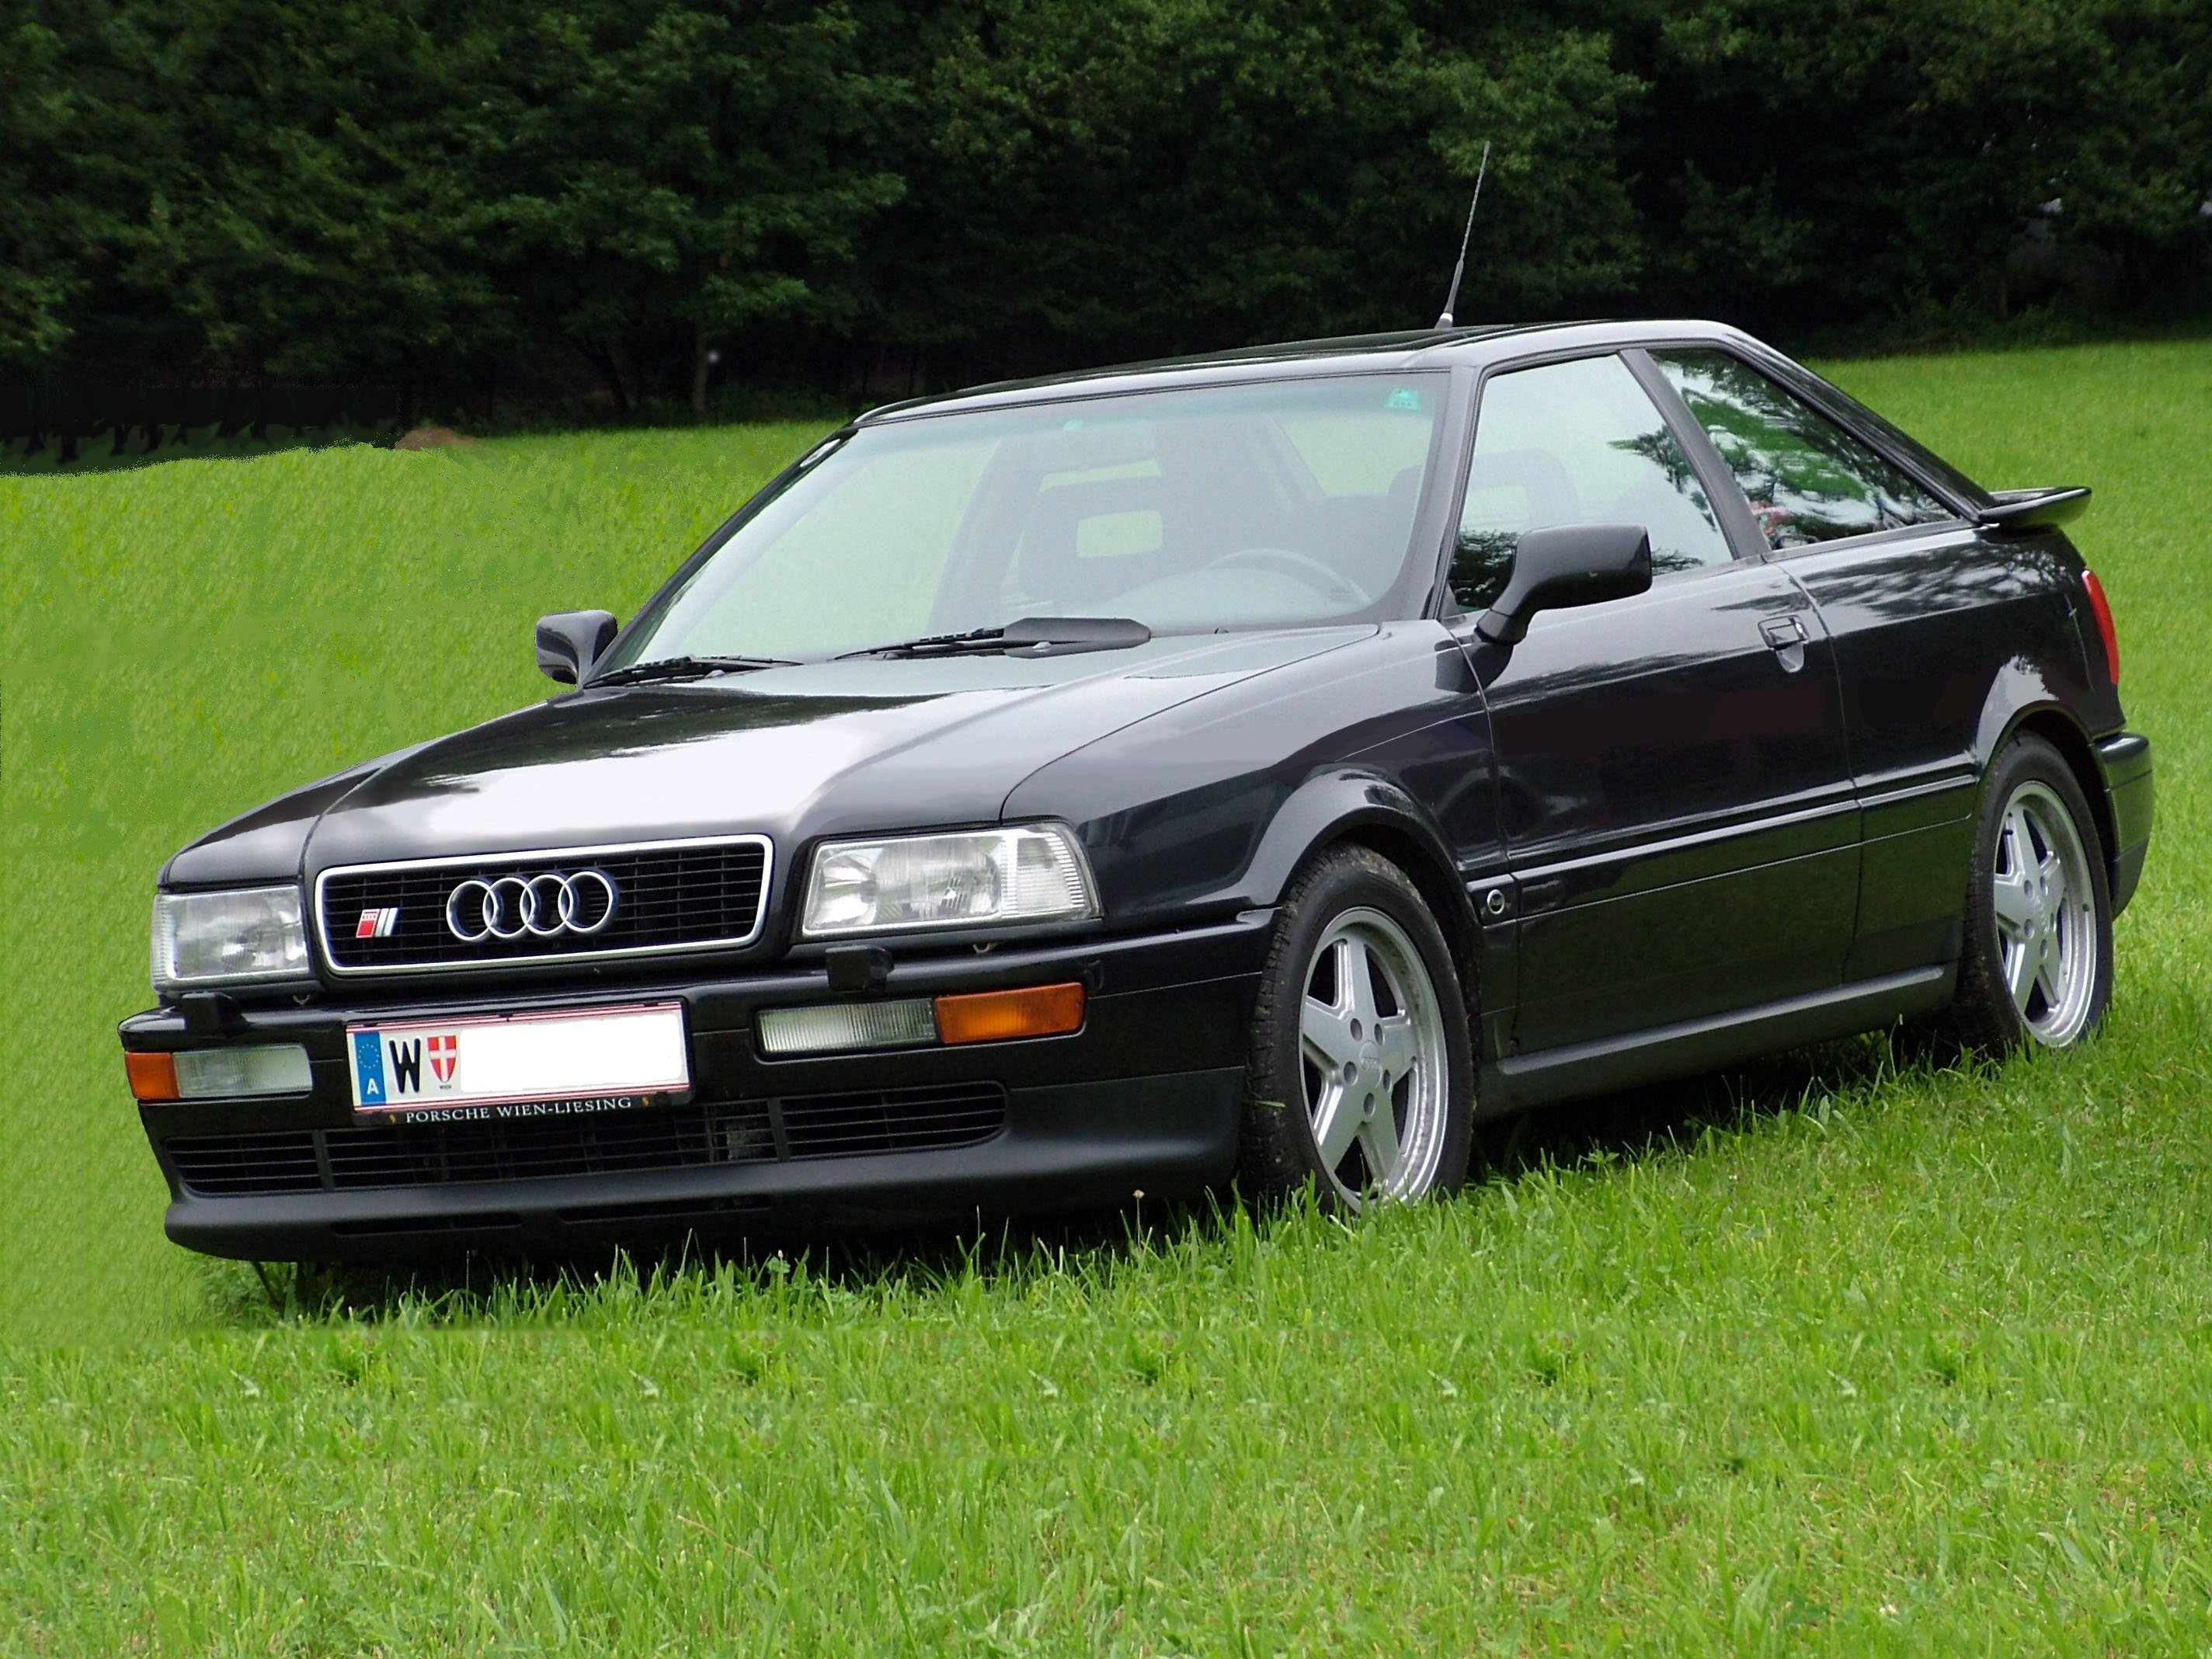 audi coupe images #10